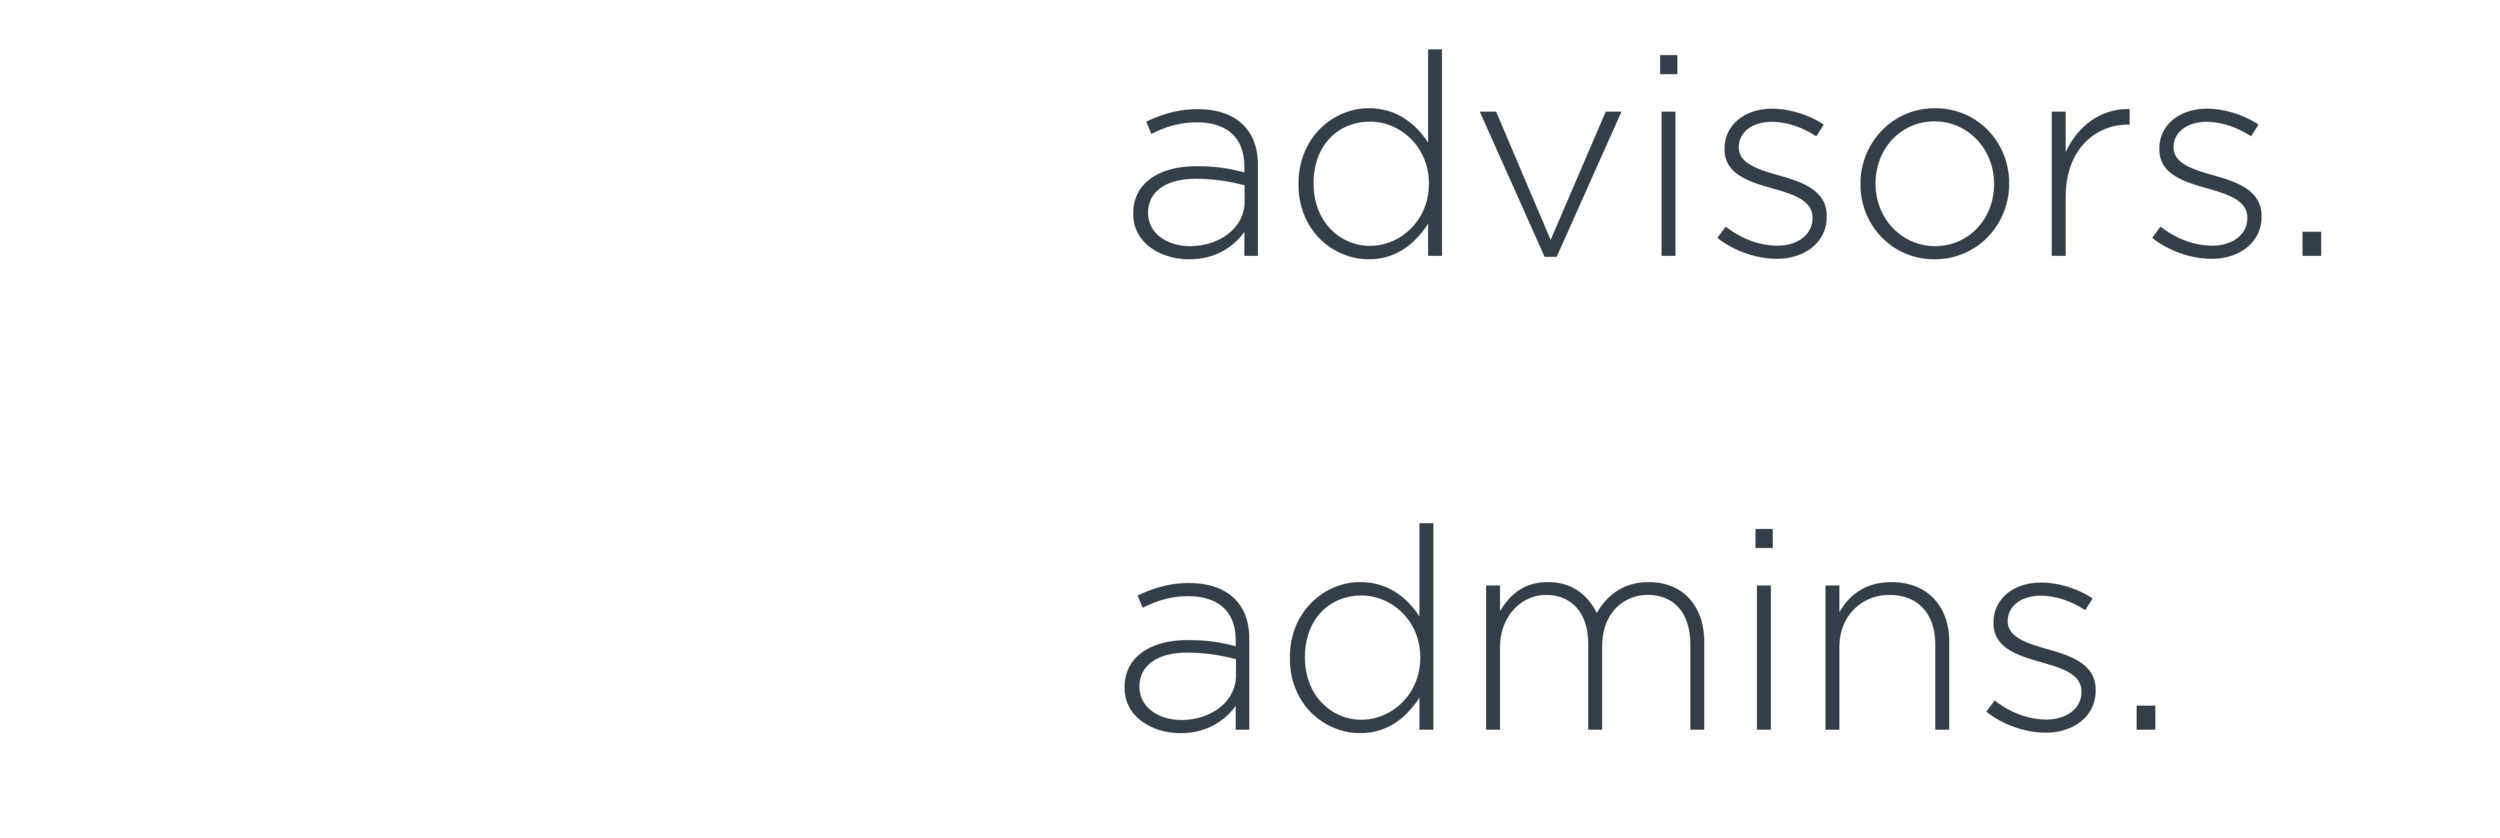 words-advisors-01.png